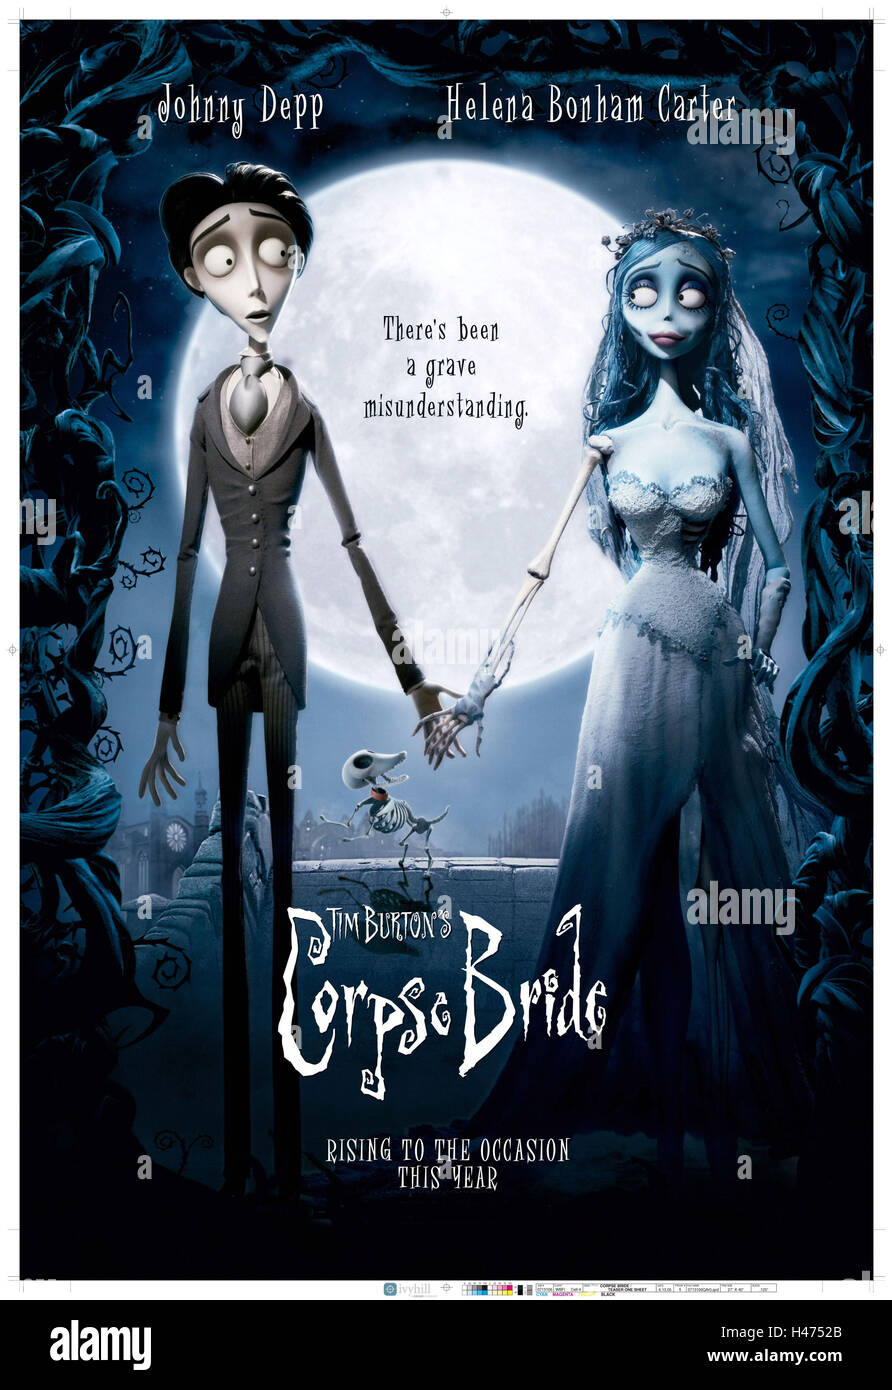 Download Film Corpse Bride 2005